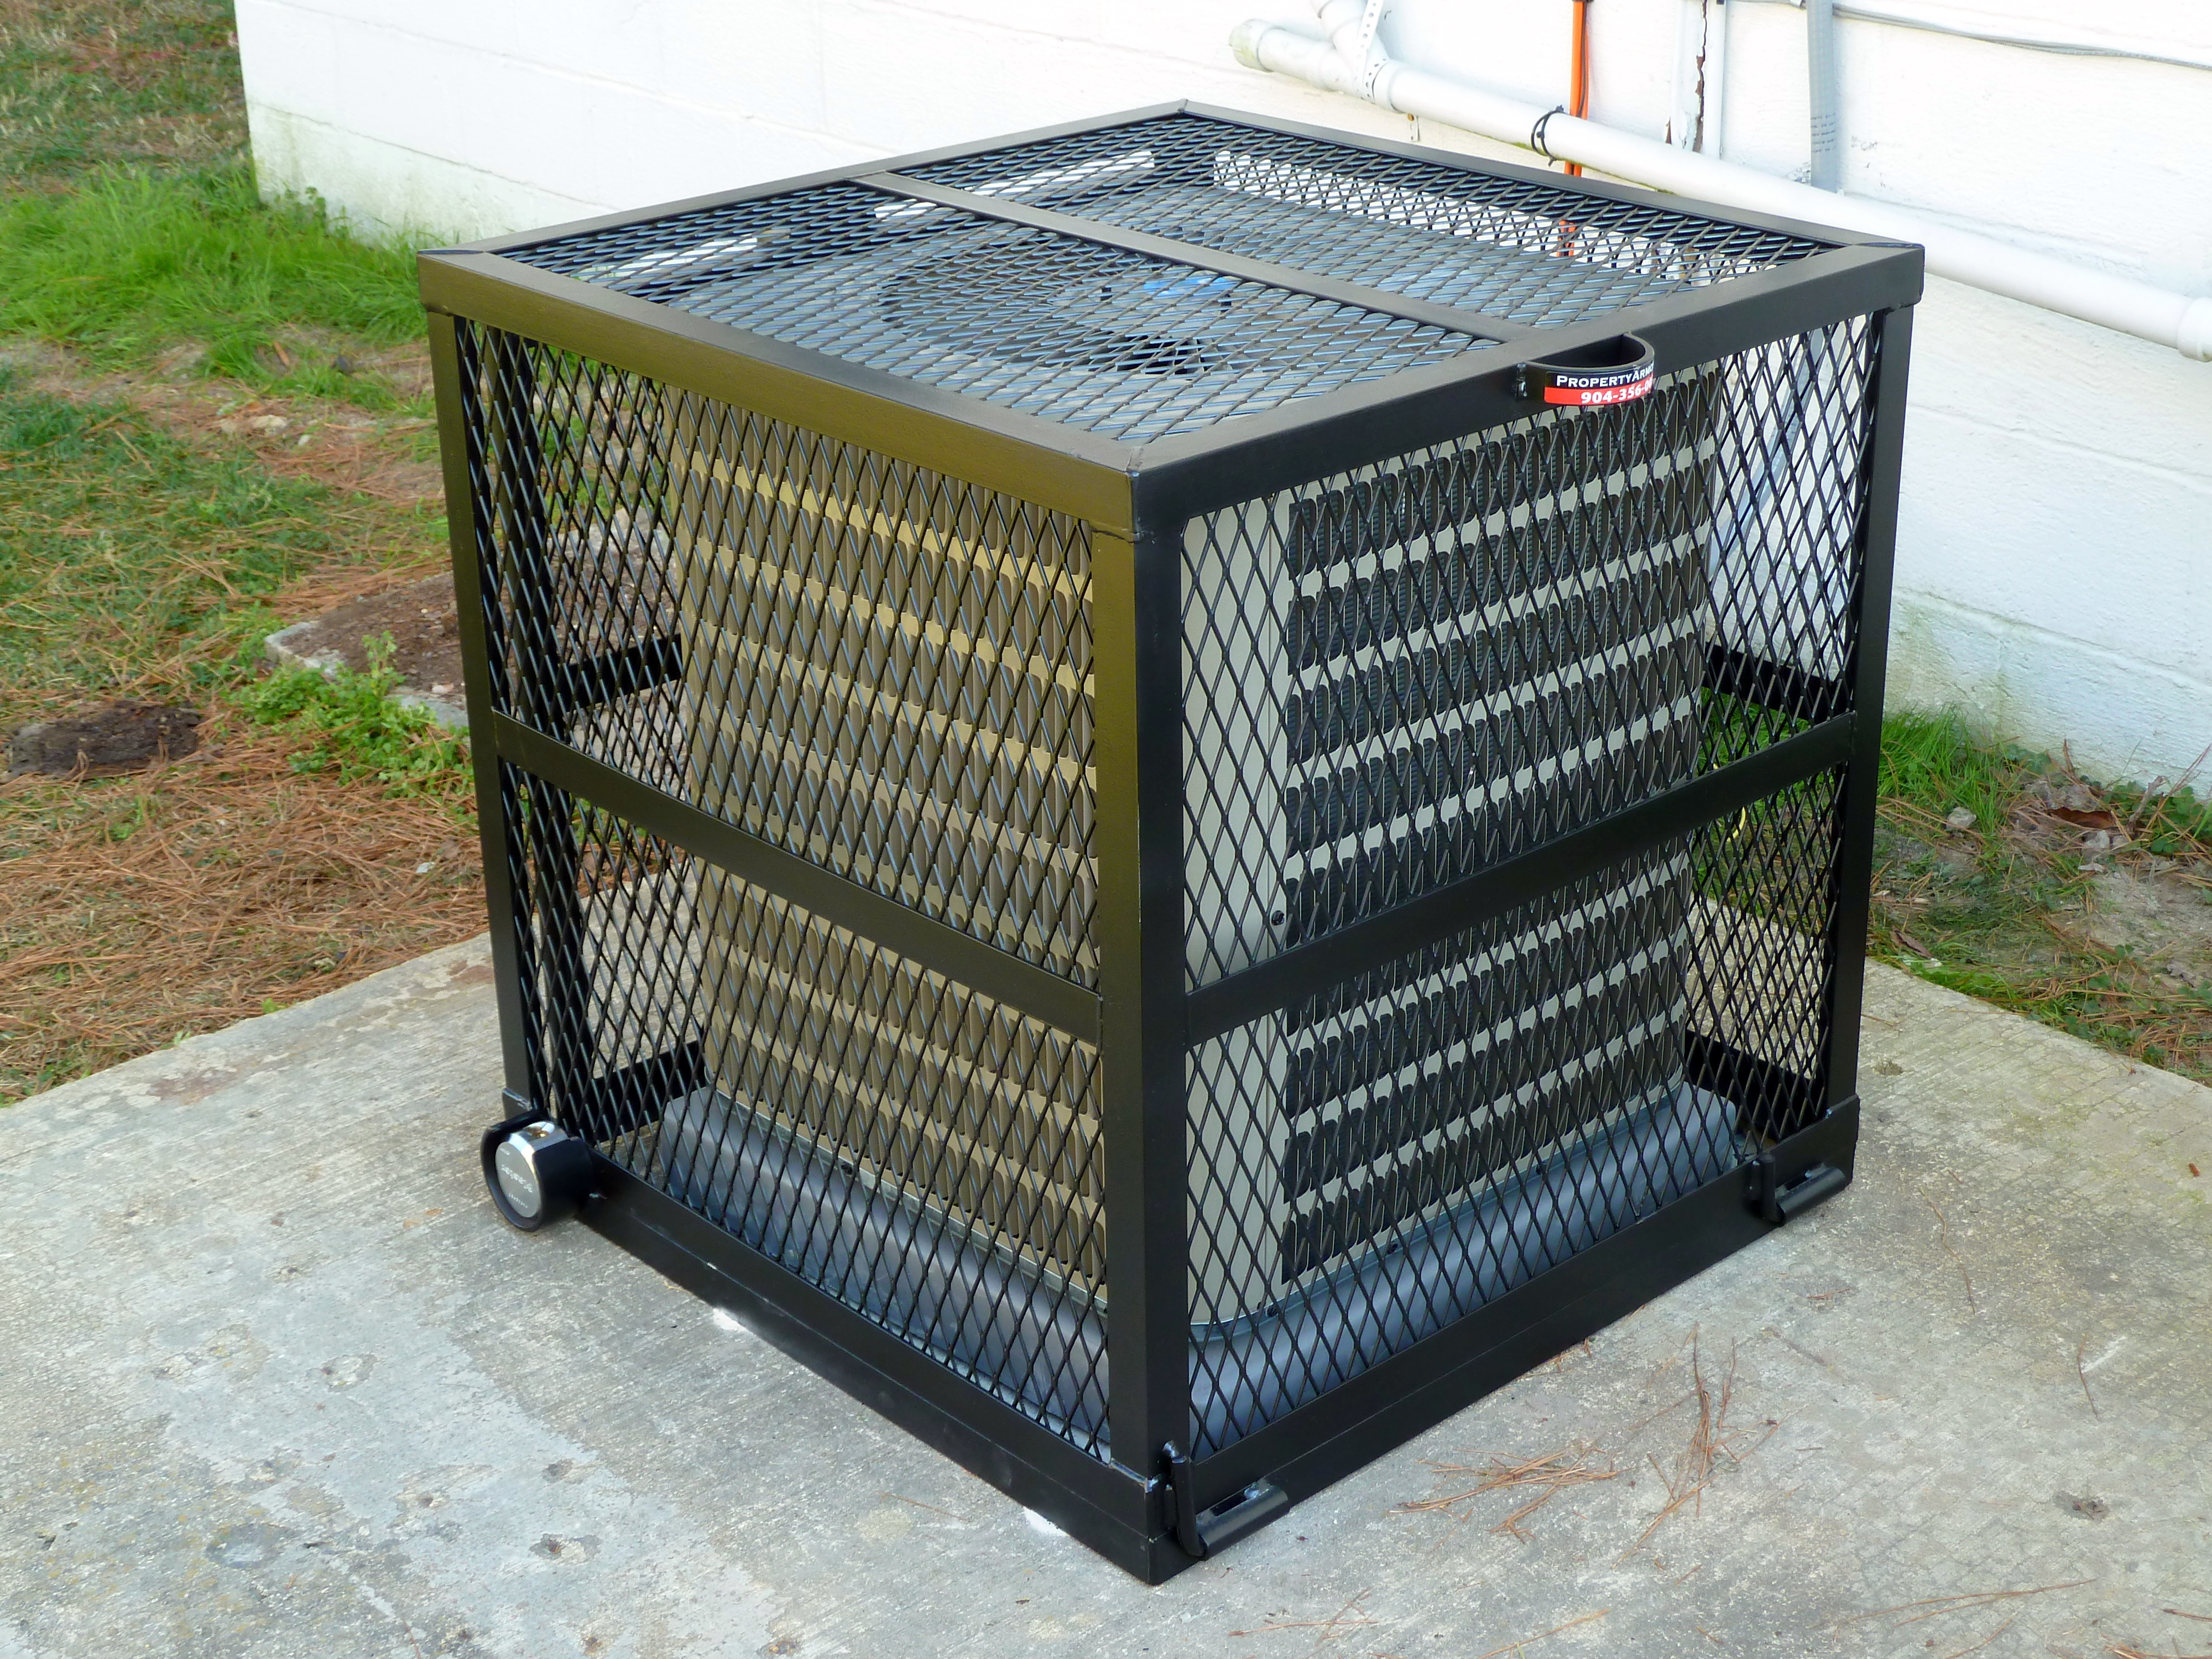 P3 Brawler Ac Cage Pro Series Air Conditioner Cages